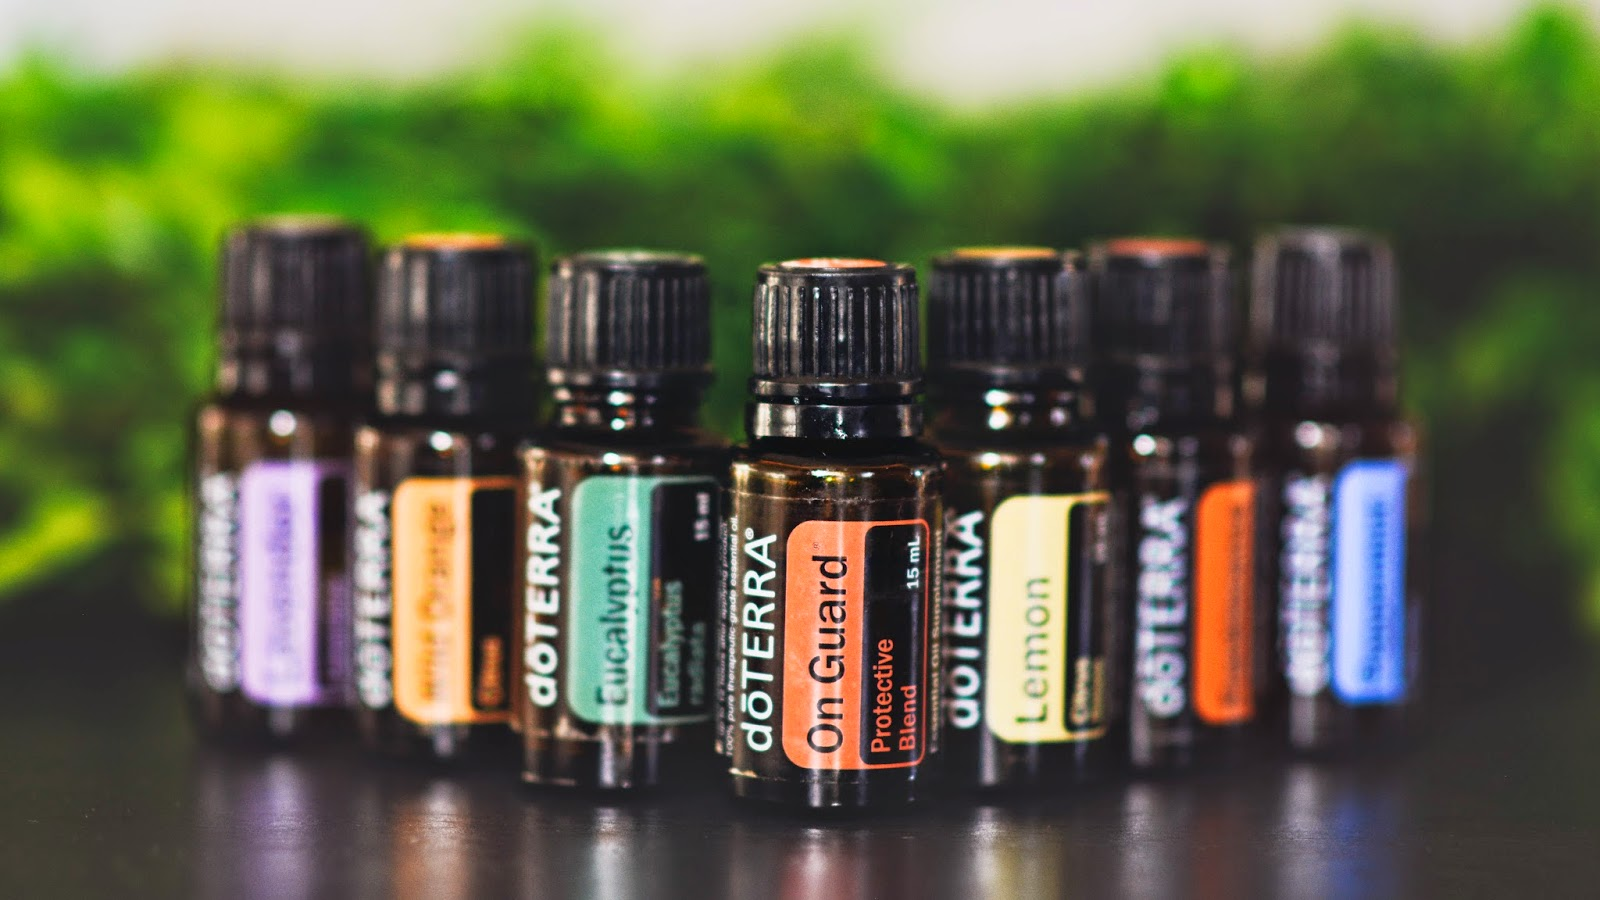 How to Find the Best doTERRA oils? 1